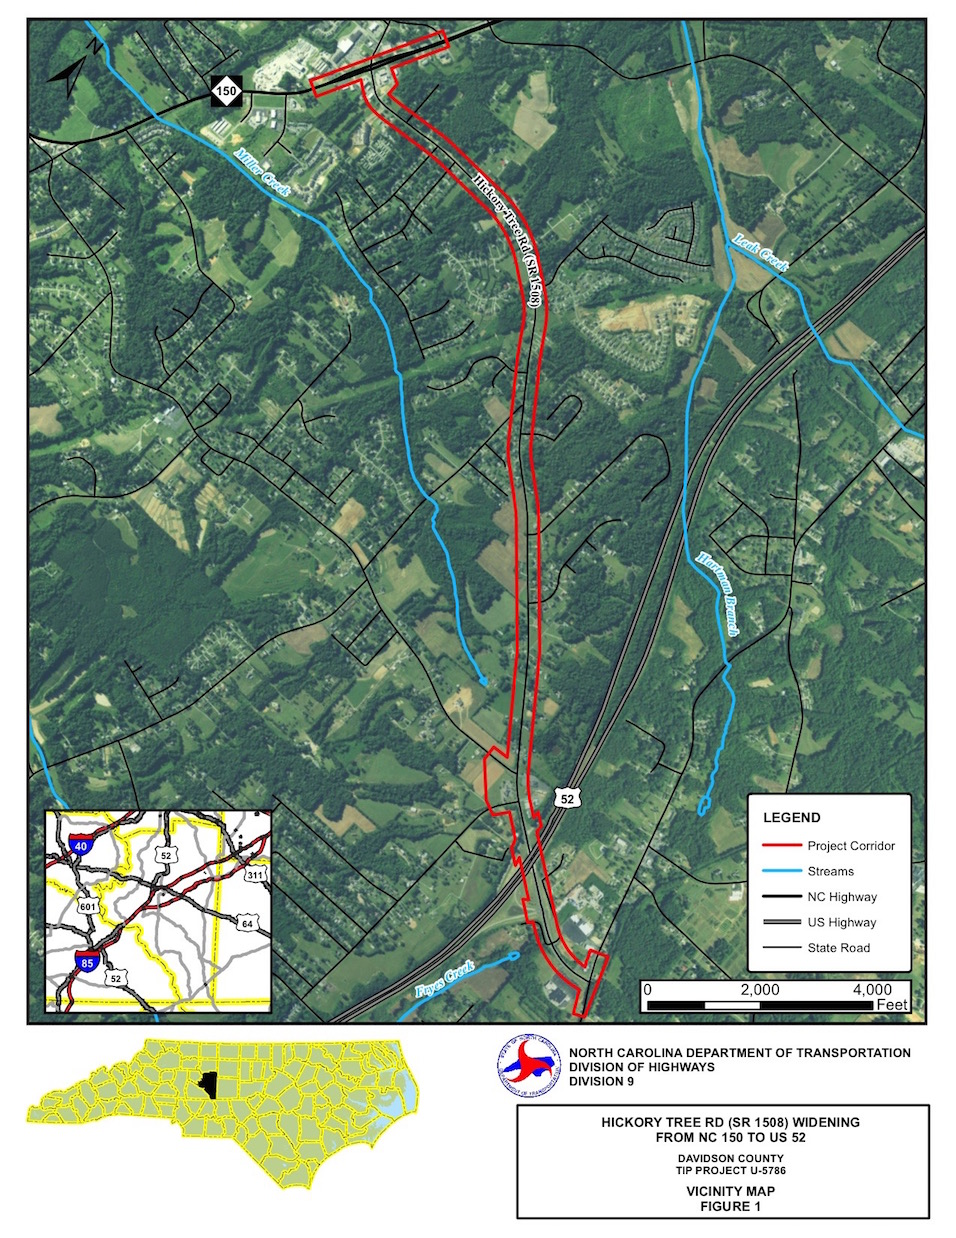 NCDOT: Public Meeting Planned For Hickory Tree Road Widening ... on tdot state map, n.c. division map, caltrans state map, nc state map, england map latitude and longitude map, indot state map, txdot state map,